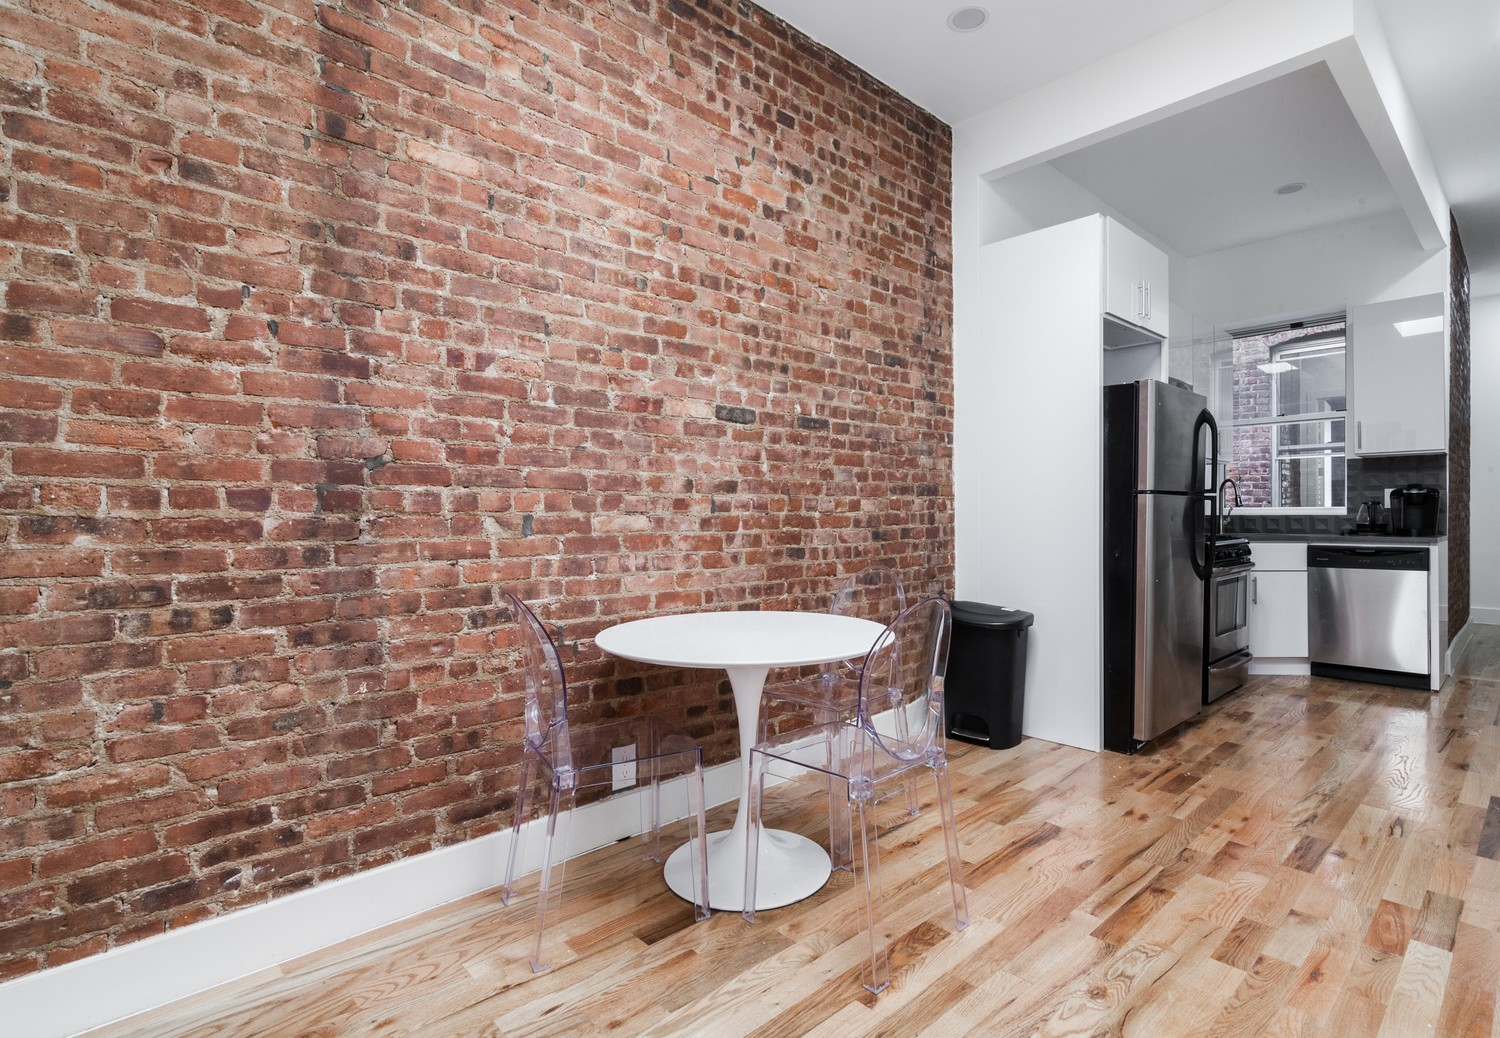 Private Room in 4 Bed Shared Apt. +Utilities & WiFi Included! - Subway stop is only 3 minutes away!